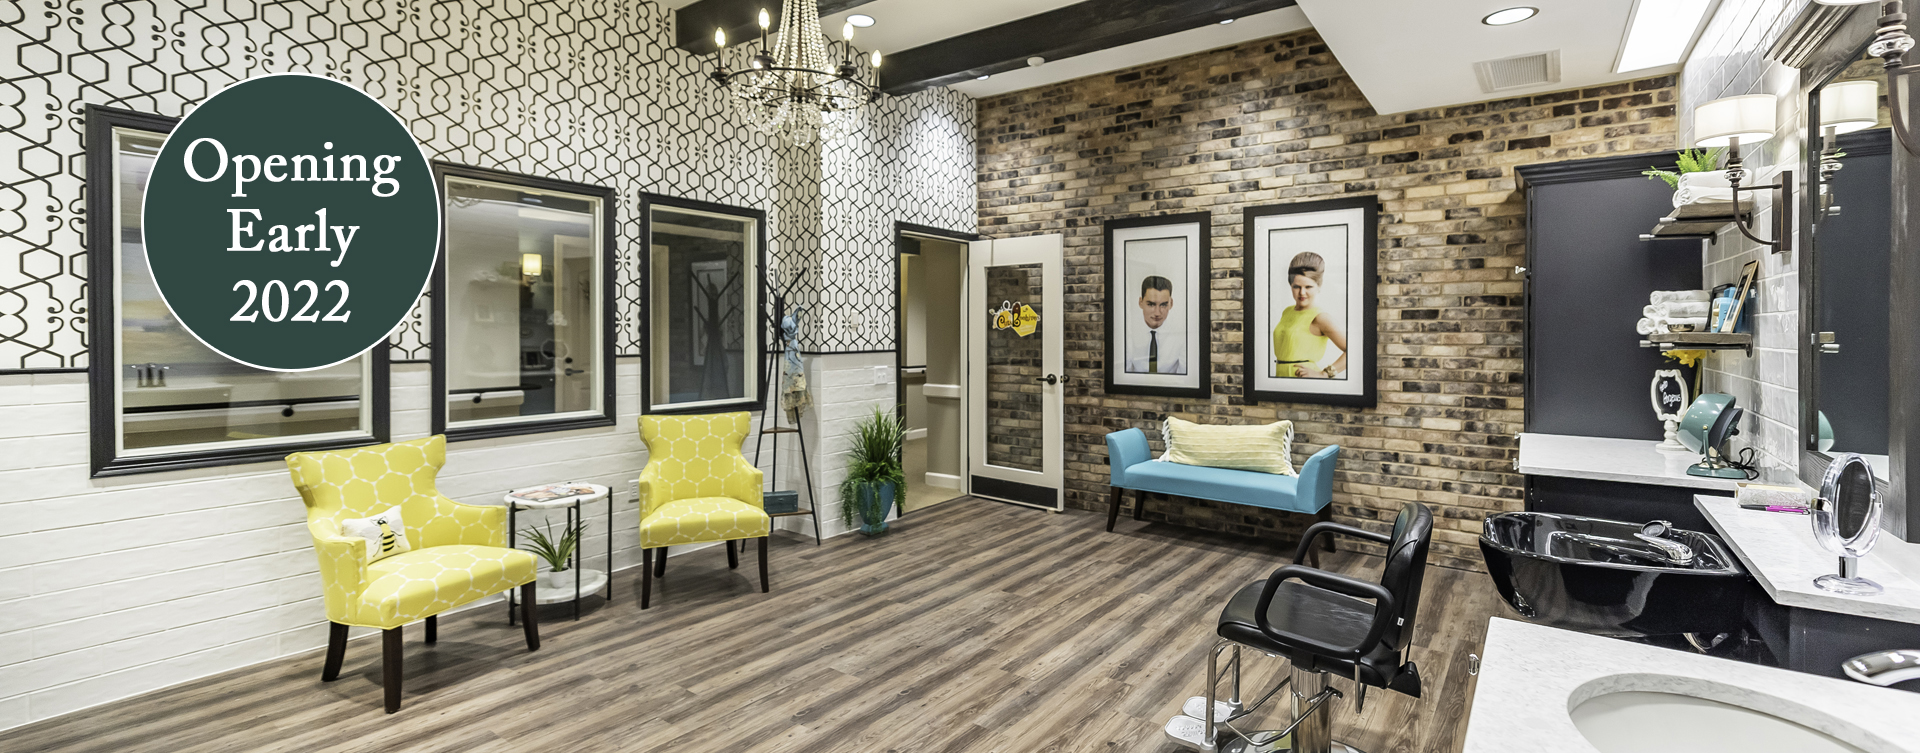 Receive personalized, at-home treatment from our stylist in the salon at Bickford of Chesapeake